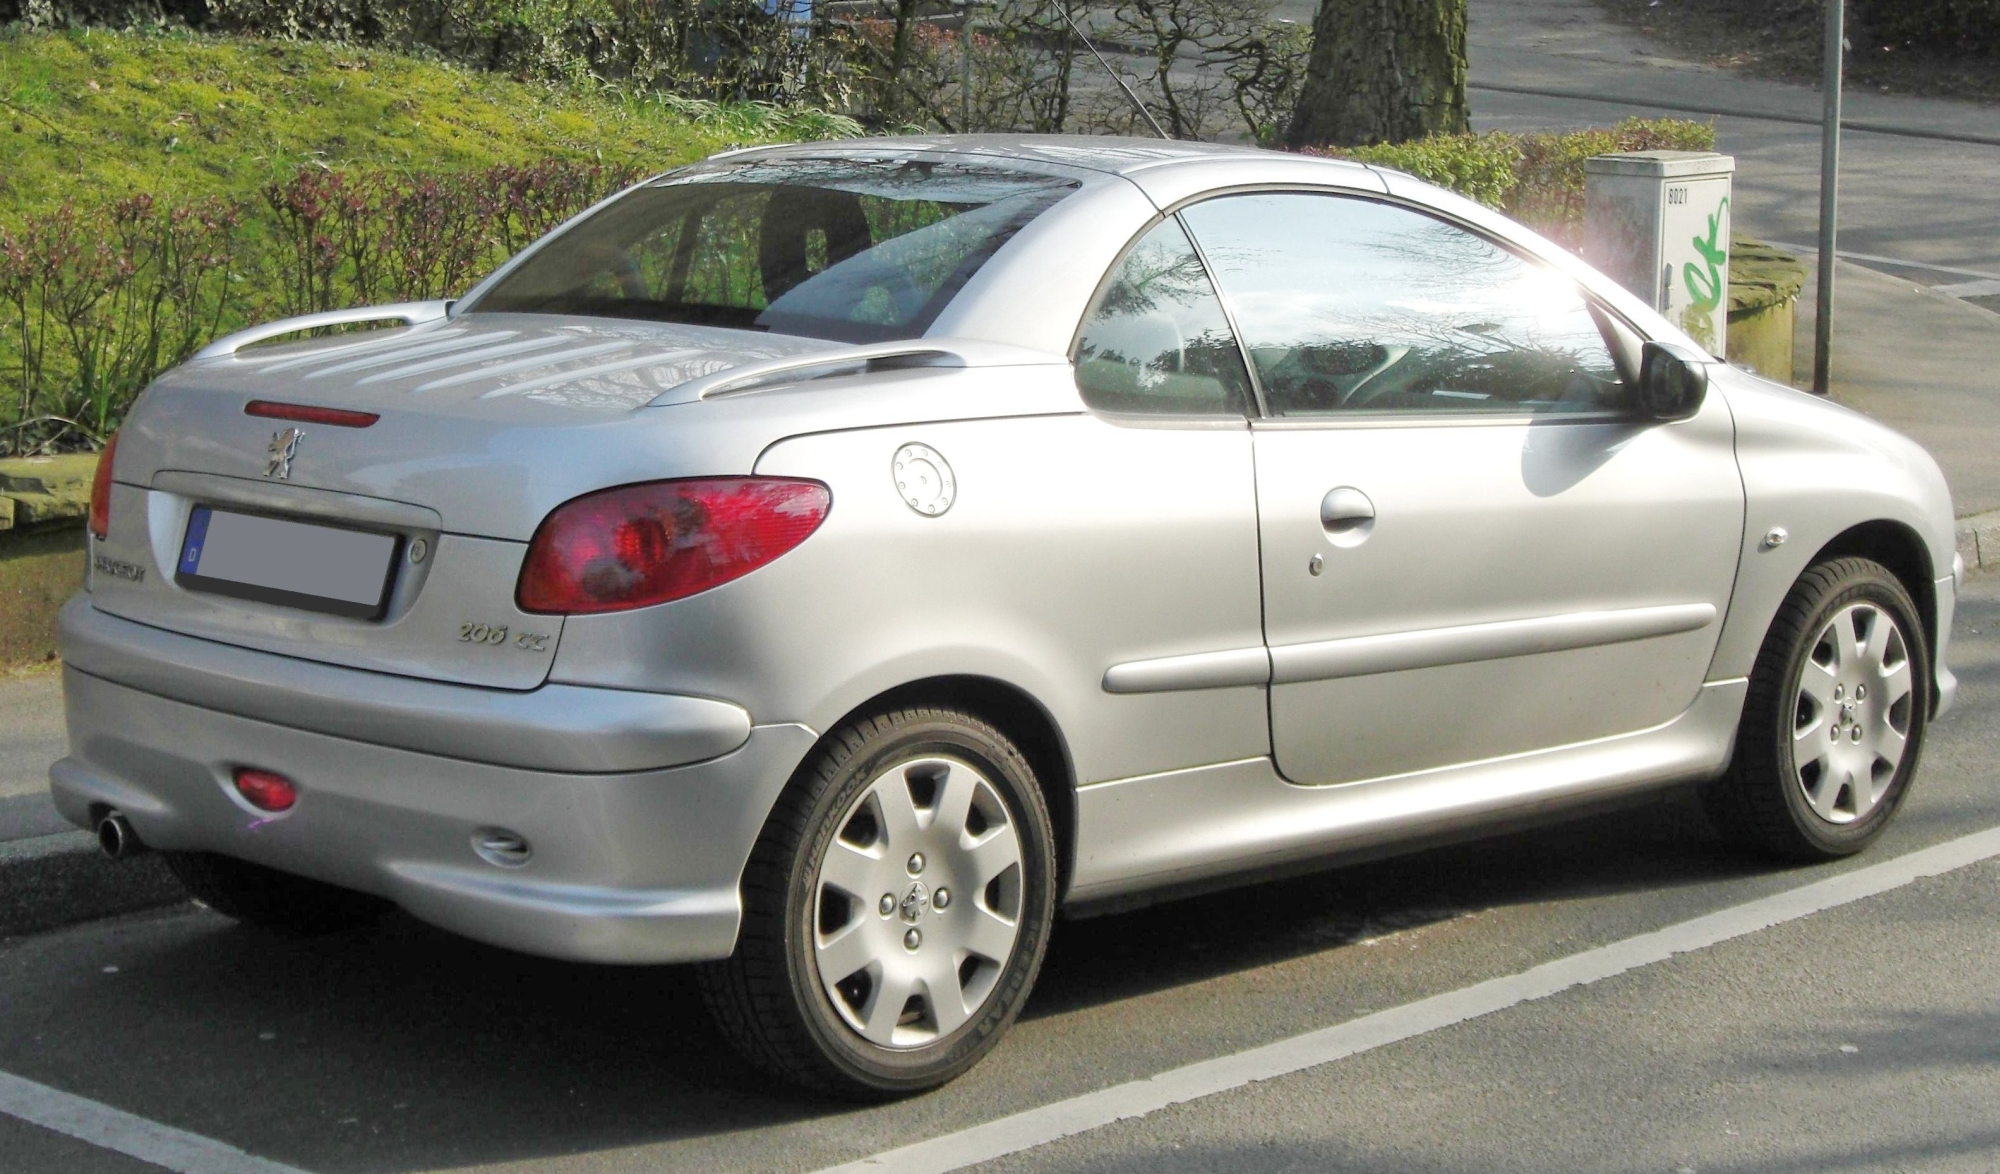 file peugeot 206cc facelift wikimedia commons. Black Bedroom Furniture Sets. Home Design Ideas